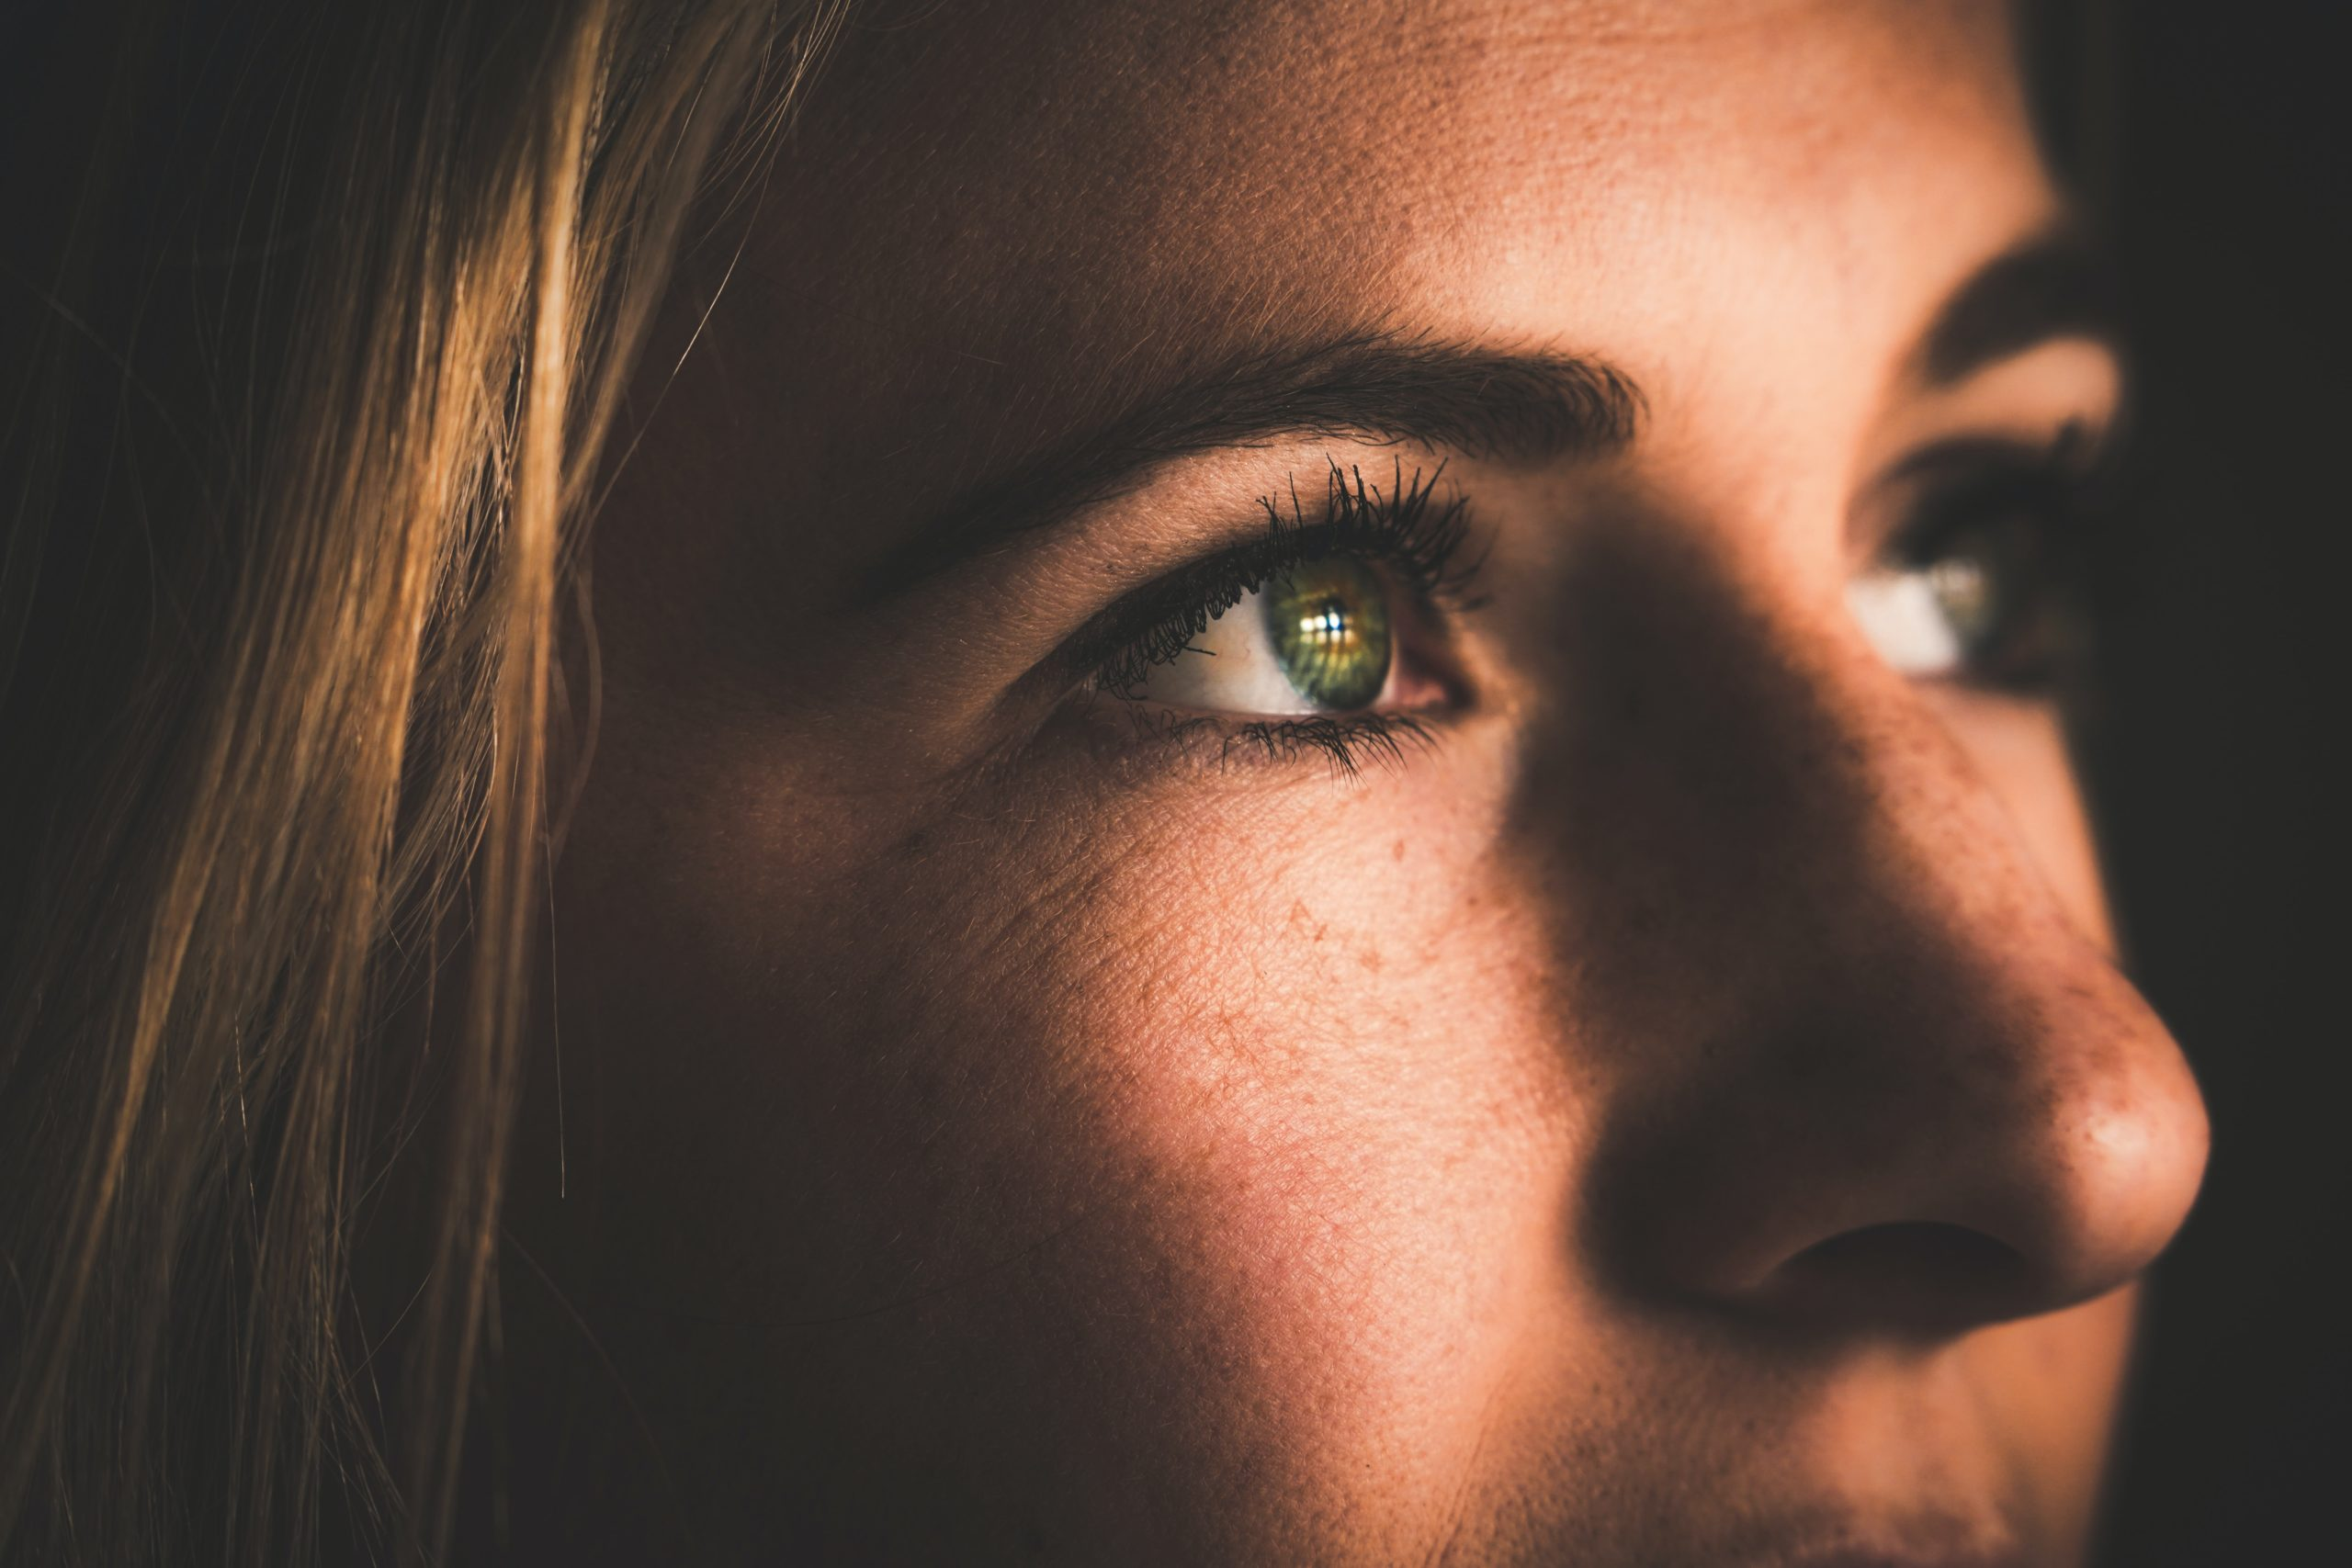 Anxiety, Nausea and Vision – How It All Relates